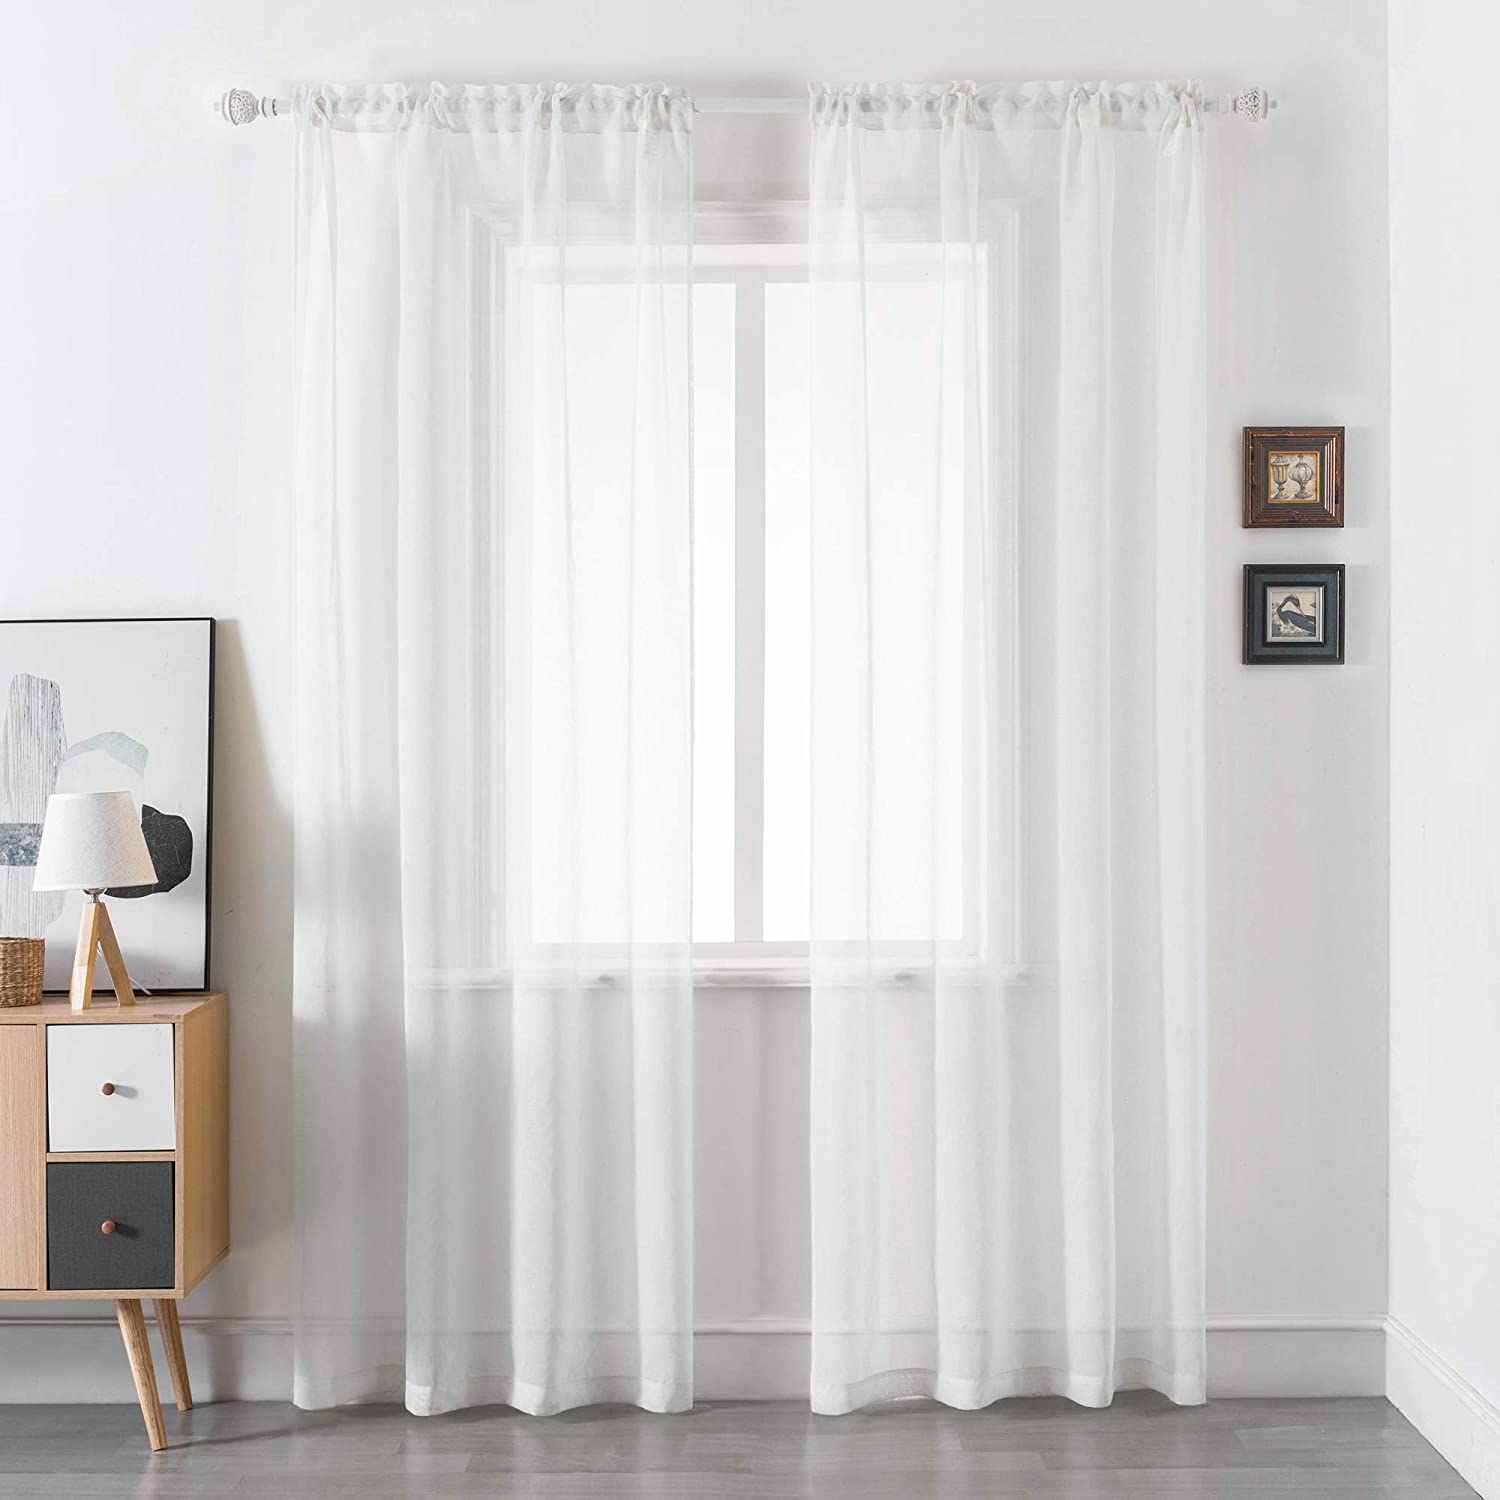 DUALIFE White Sheer Curtains 72 Inches Long 2 Panels for Bedroom - Basic Home Decoration Solid Faux Linen Privacy Voile Curtains Rod Pocket (52 Wide x 72 inch Length) Assorted Colors & Sizes